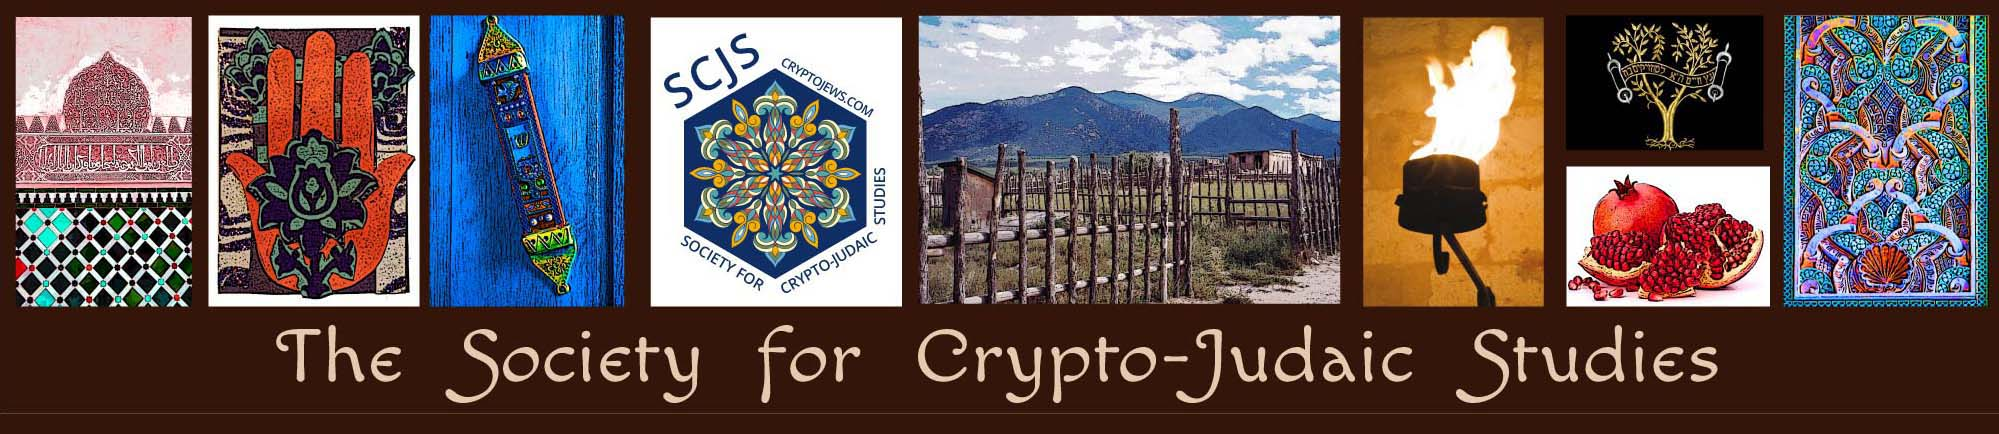 Society for Crypto-Judaic Studies Annual Conference